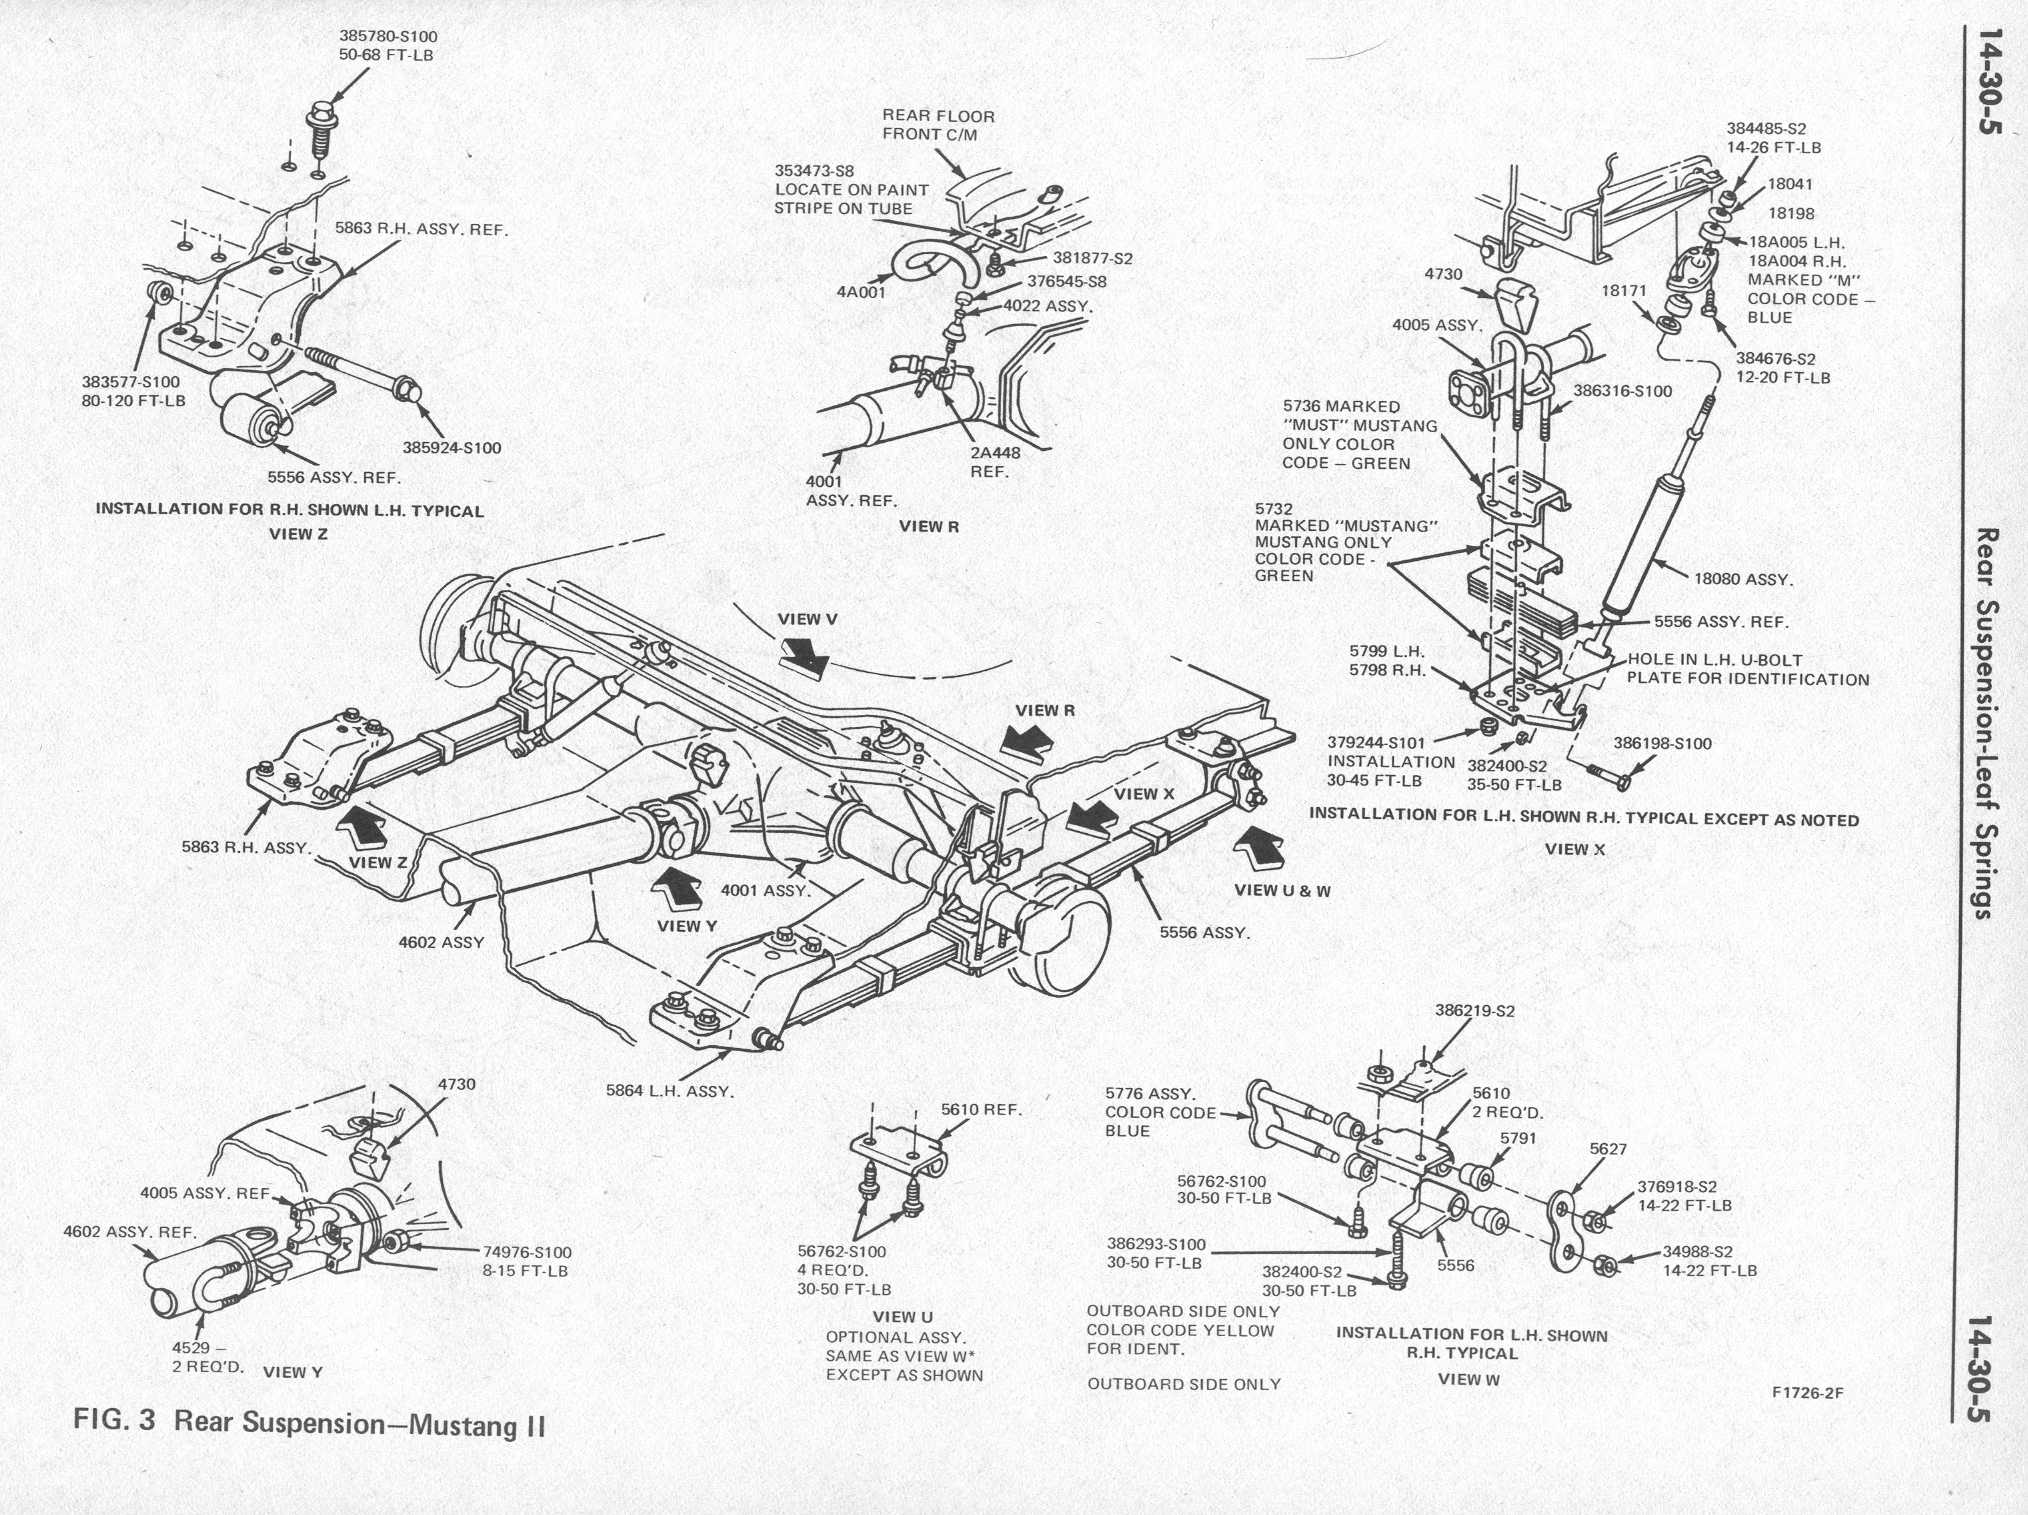 The Mustang Ii Organization Switch Wiring Diagram Further 1967 Ford We Also Have A Very Large 300kb View